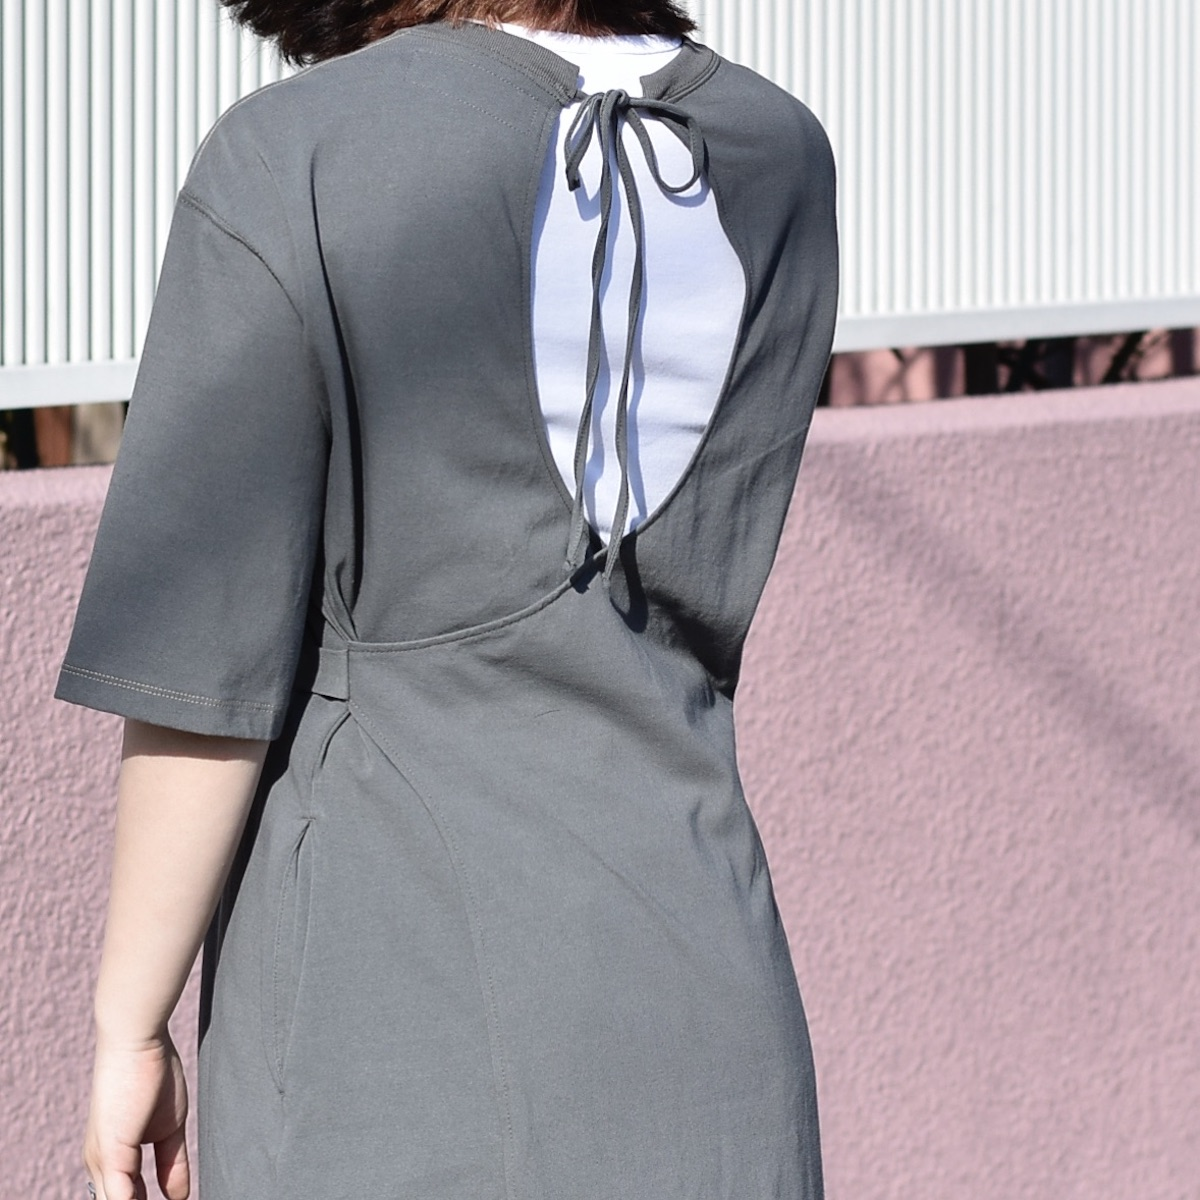 JANESMITH / BACK CACHECOEUR OP 着用画像③